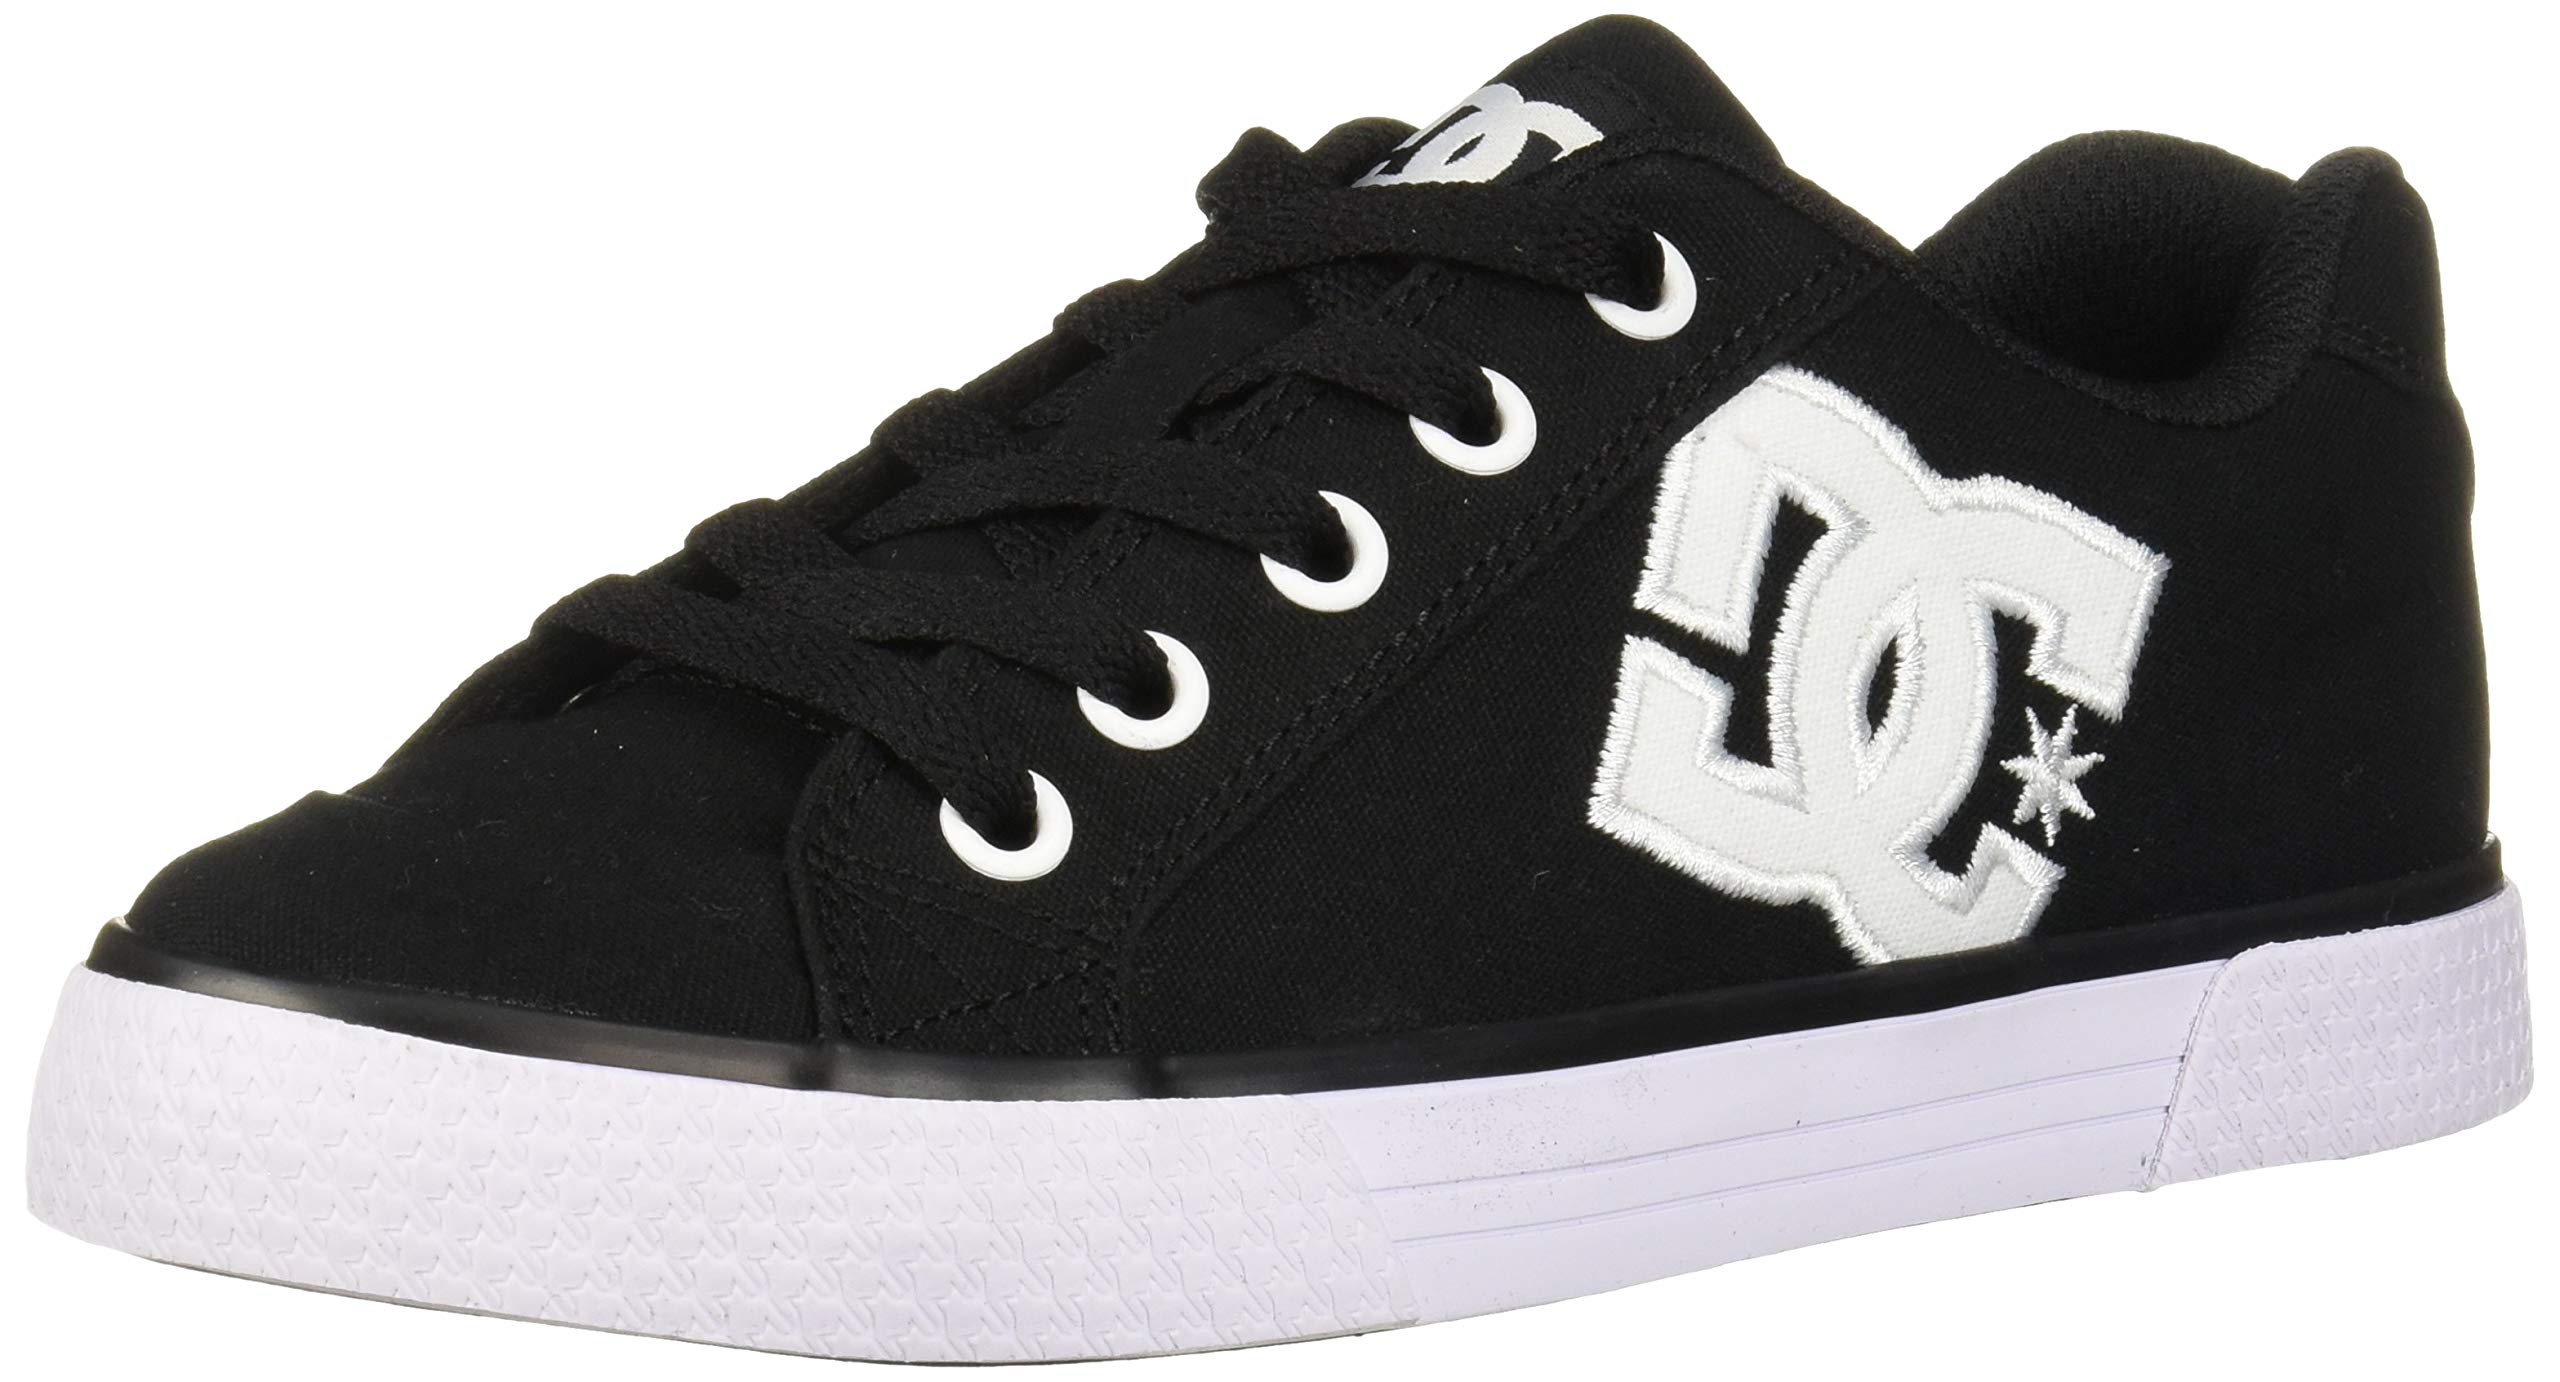 DC Women's Chelsea TX Skate Shoe, White/Black, 8 M US by DC